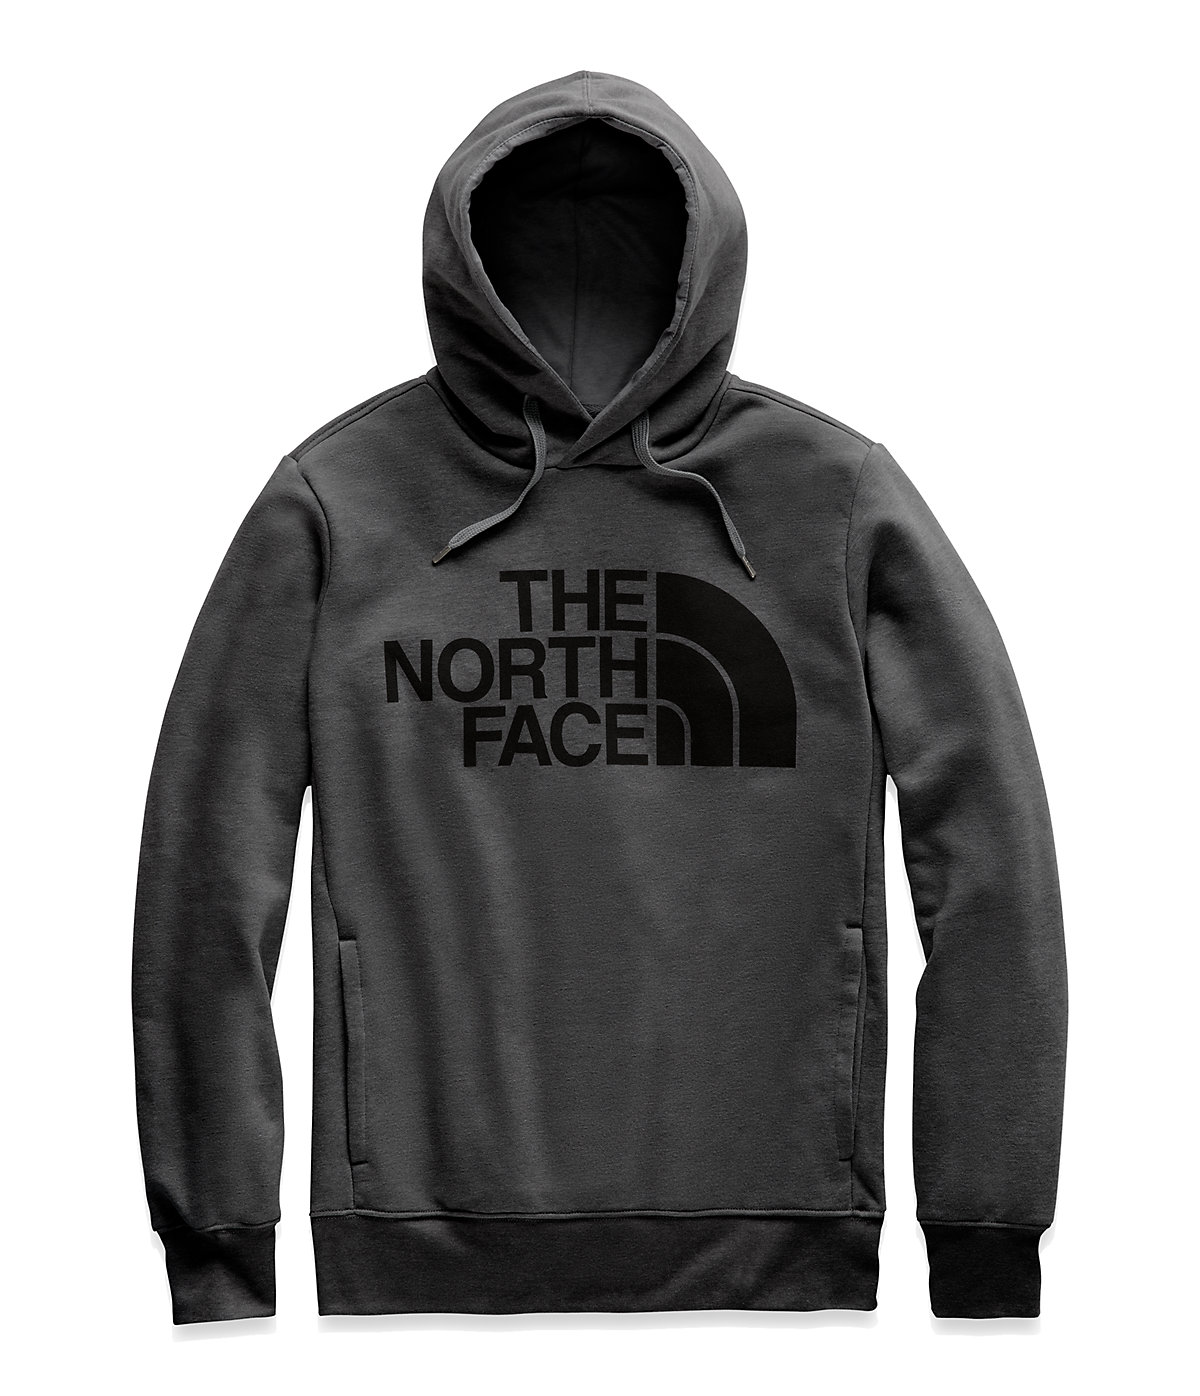 0dc9bfe1c4 The North Face Men's Mega Half Dome Pullover Hoodie in 2019 ...